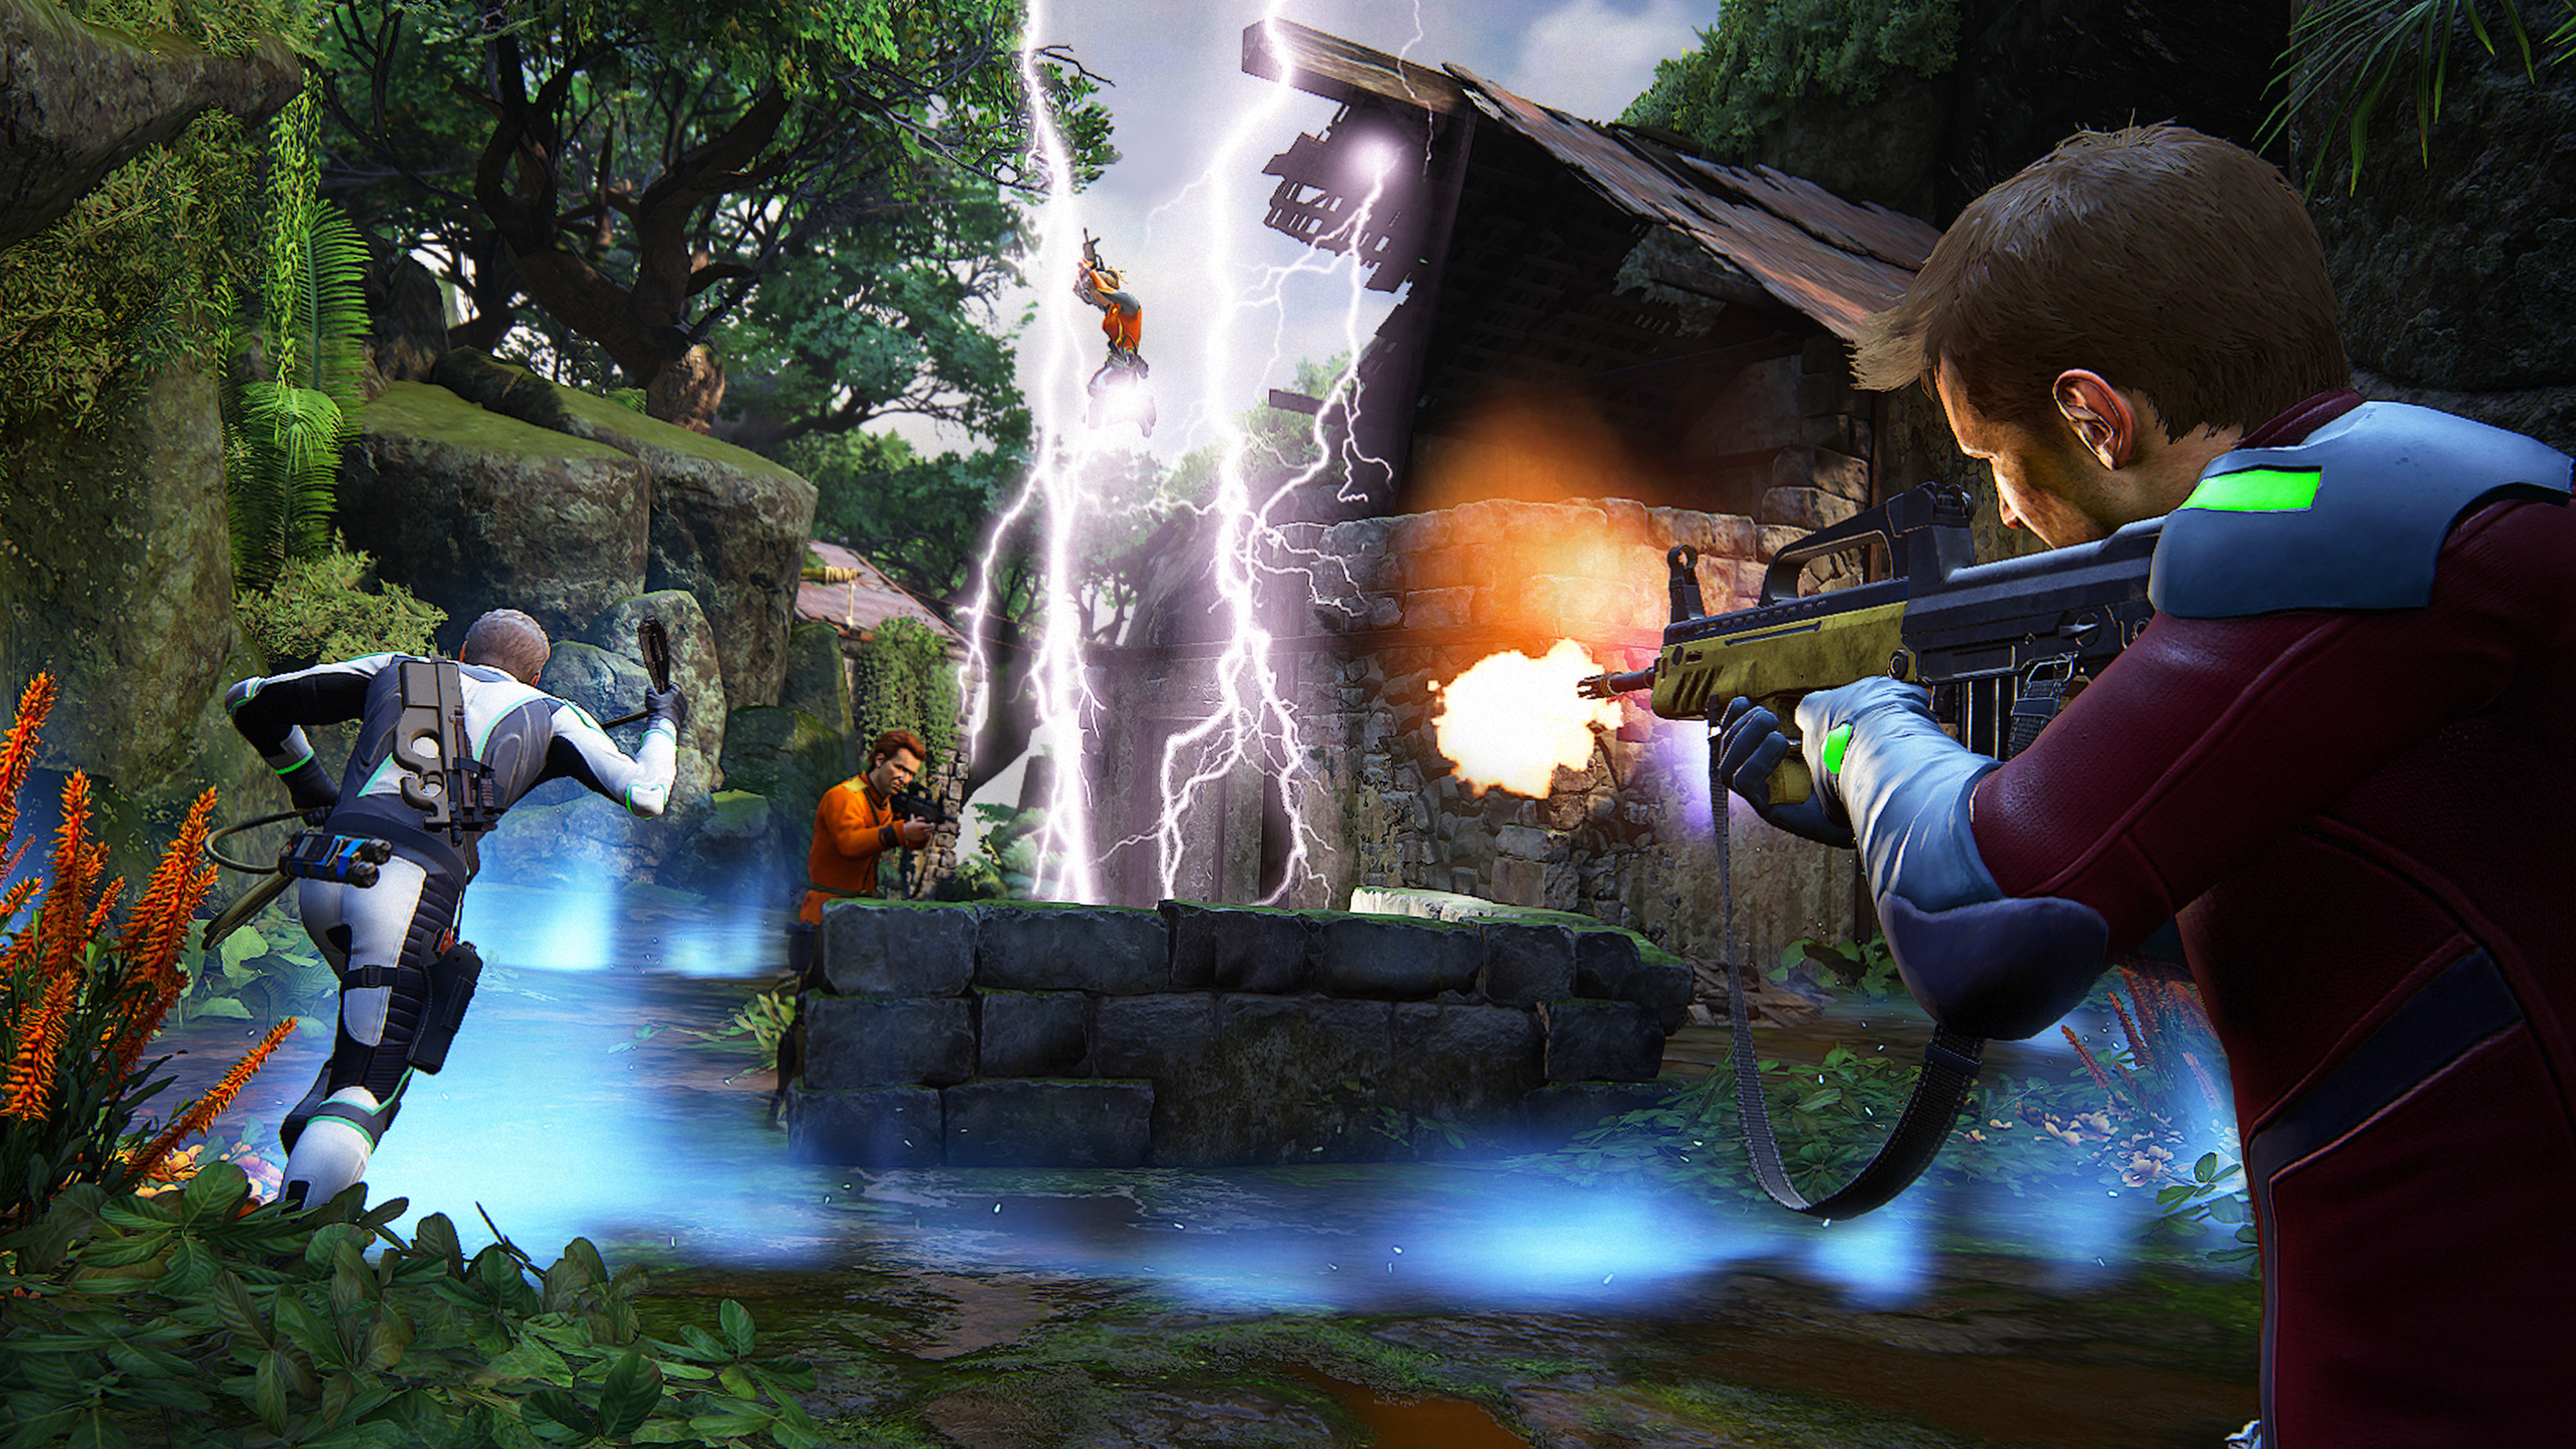 Uncharted 4 Multiplayer: New Mode, Weapons, and More Launching March 17